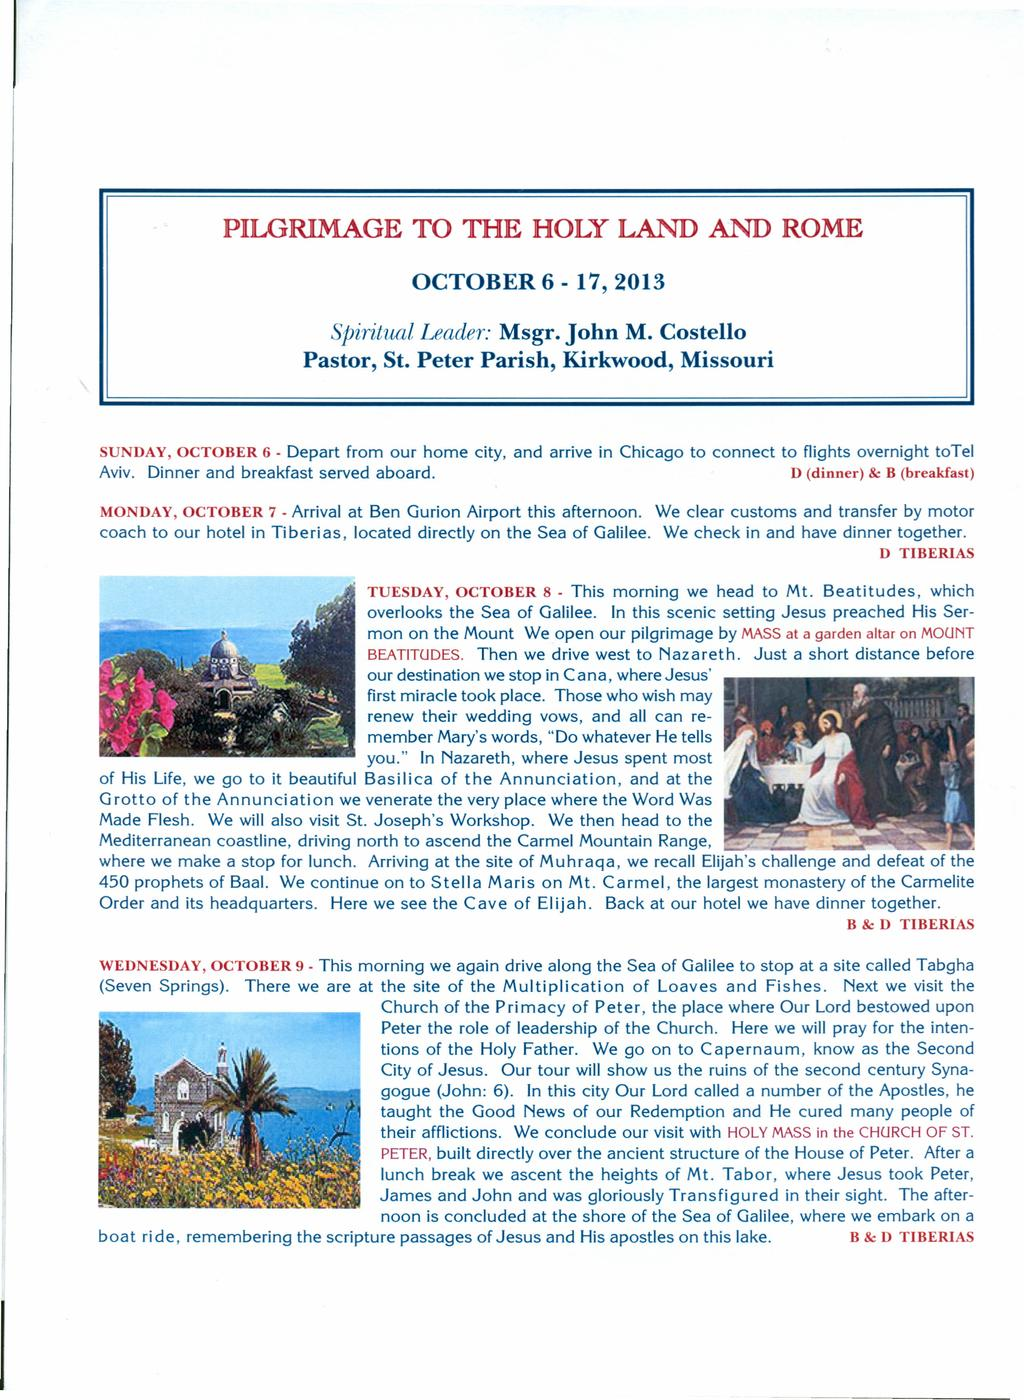 PILGRIMAGE TO THE HOLY LAND AND ROME OCTOBER 6-17,2013 Spiritual Leader: Msgr. John M. Costello Pastor, St.